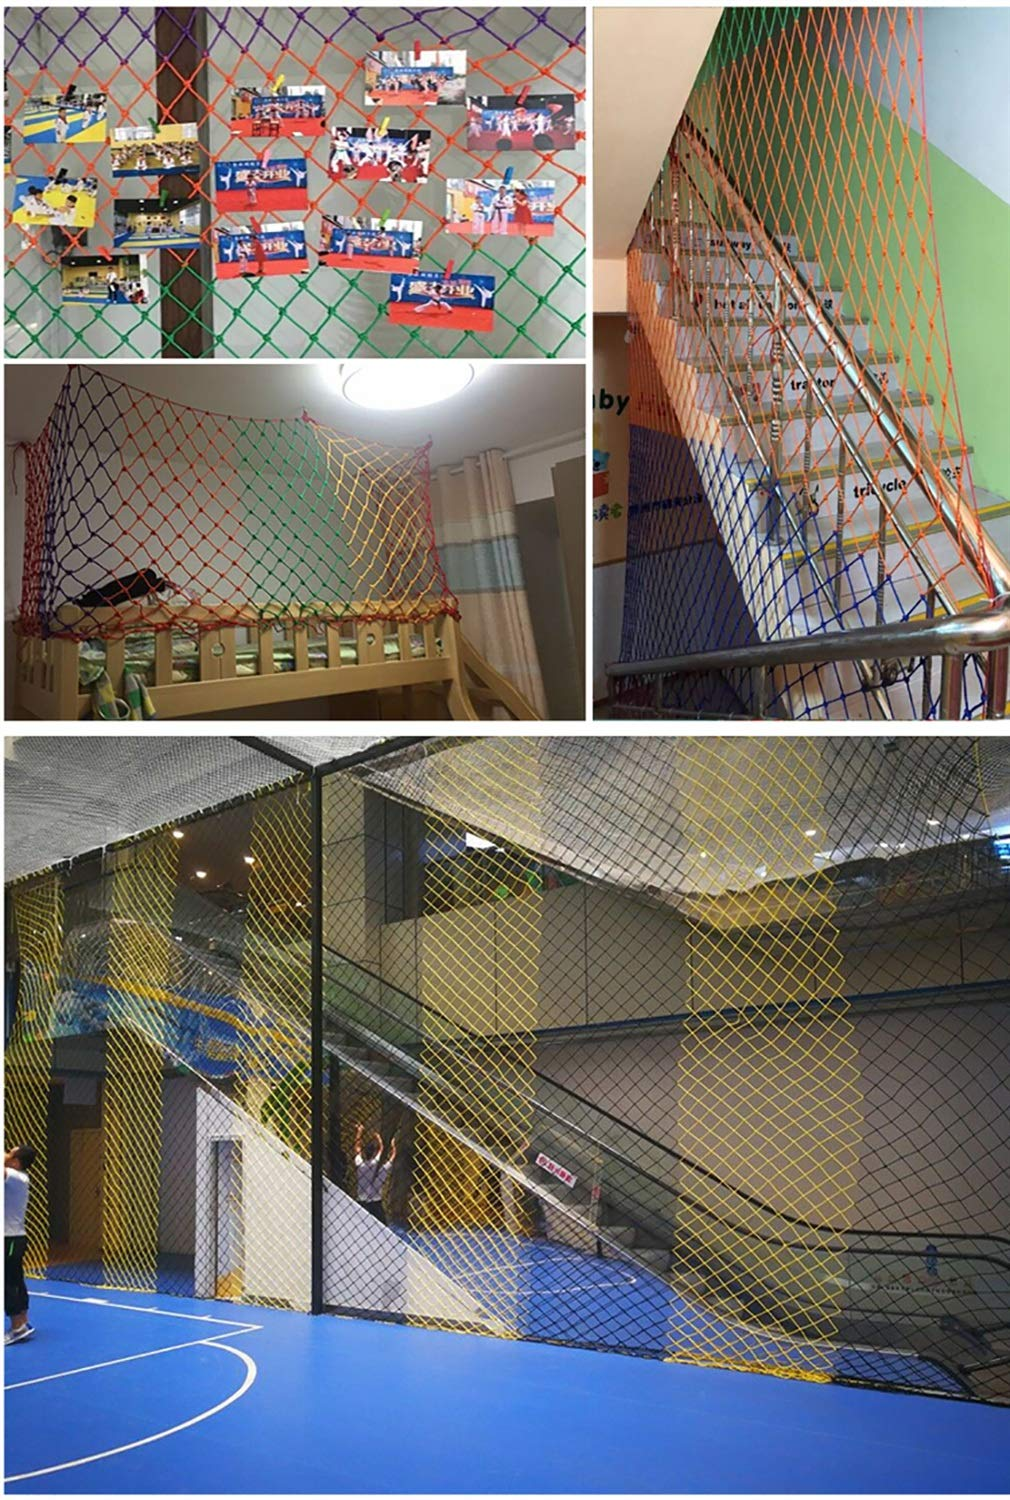 Child safety net protective net balcony stairs anti-fall net kindergarten color decorative net fence network Length 1M /9M Hand braided traditional structure (Color : Outdoor, Size : 4m*5m)  [Protect children's safety]: Many children fall from the building, let us understand that the safety of children can not be ignored. [Polyester knotless woven mesh]: The mesh surface has large pulling force, and the double needle has no knot woven mesh hole, so that the mesh has stronger impact resistance. [wire diameter 4MM, mesh spacing 4CM]: Escort for baby safety.(Others available in our shop) 5